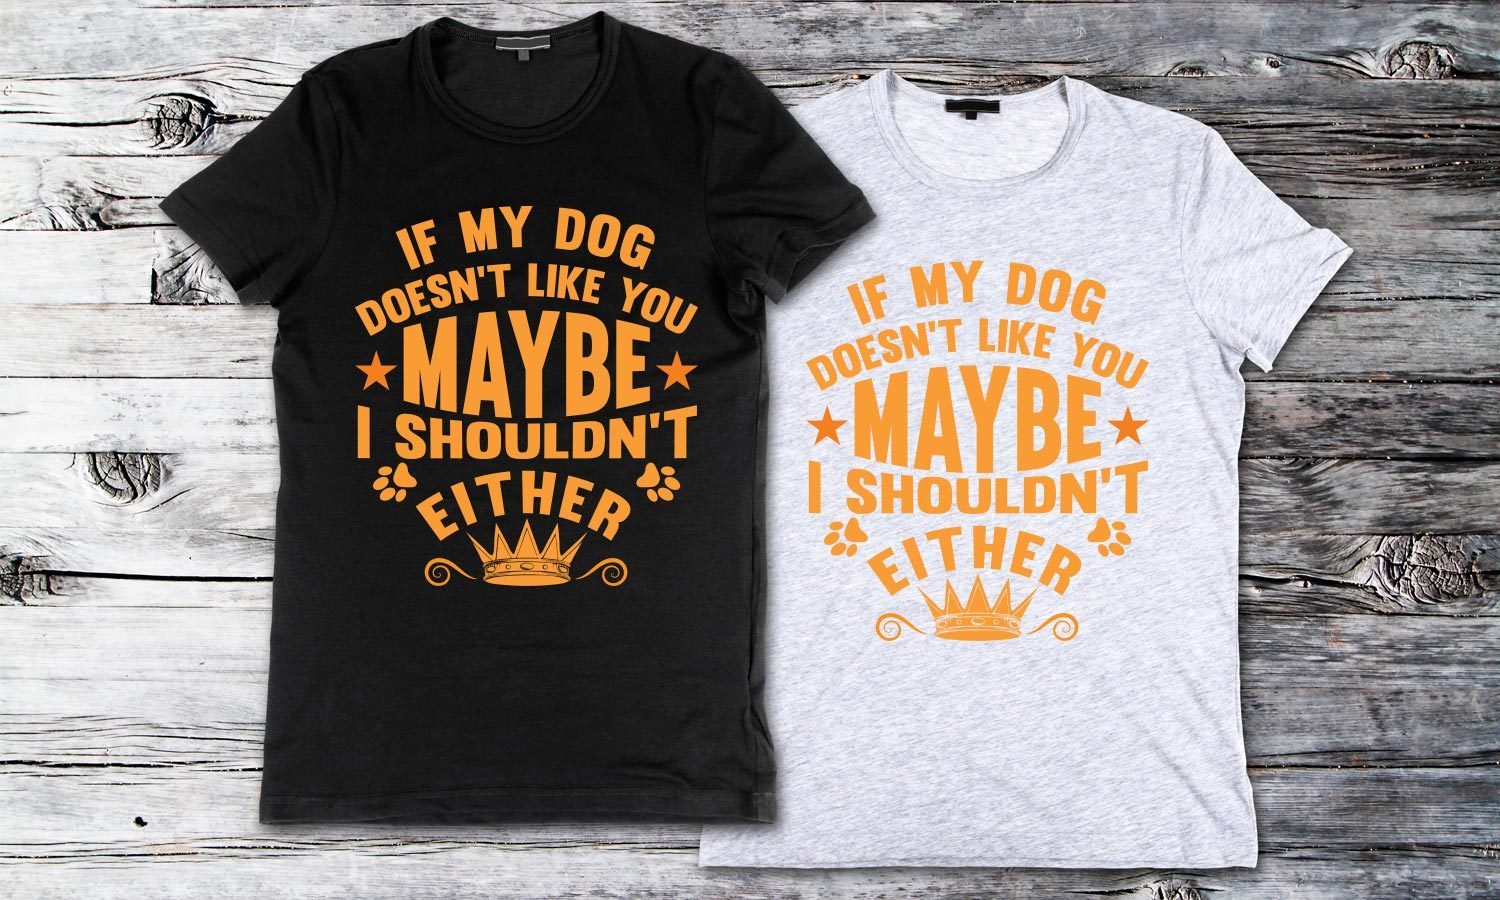 Dog Like - Printed T-Shirt for Men, Women and Kids - TS175